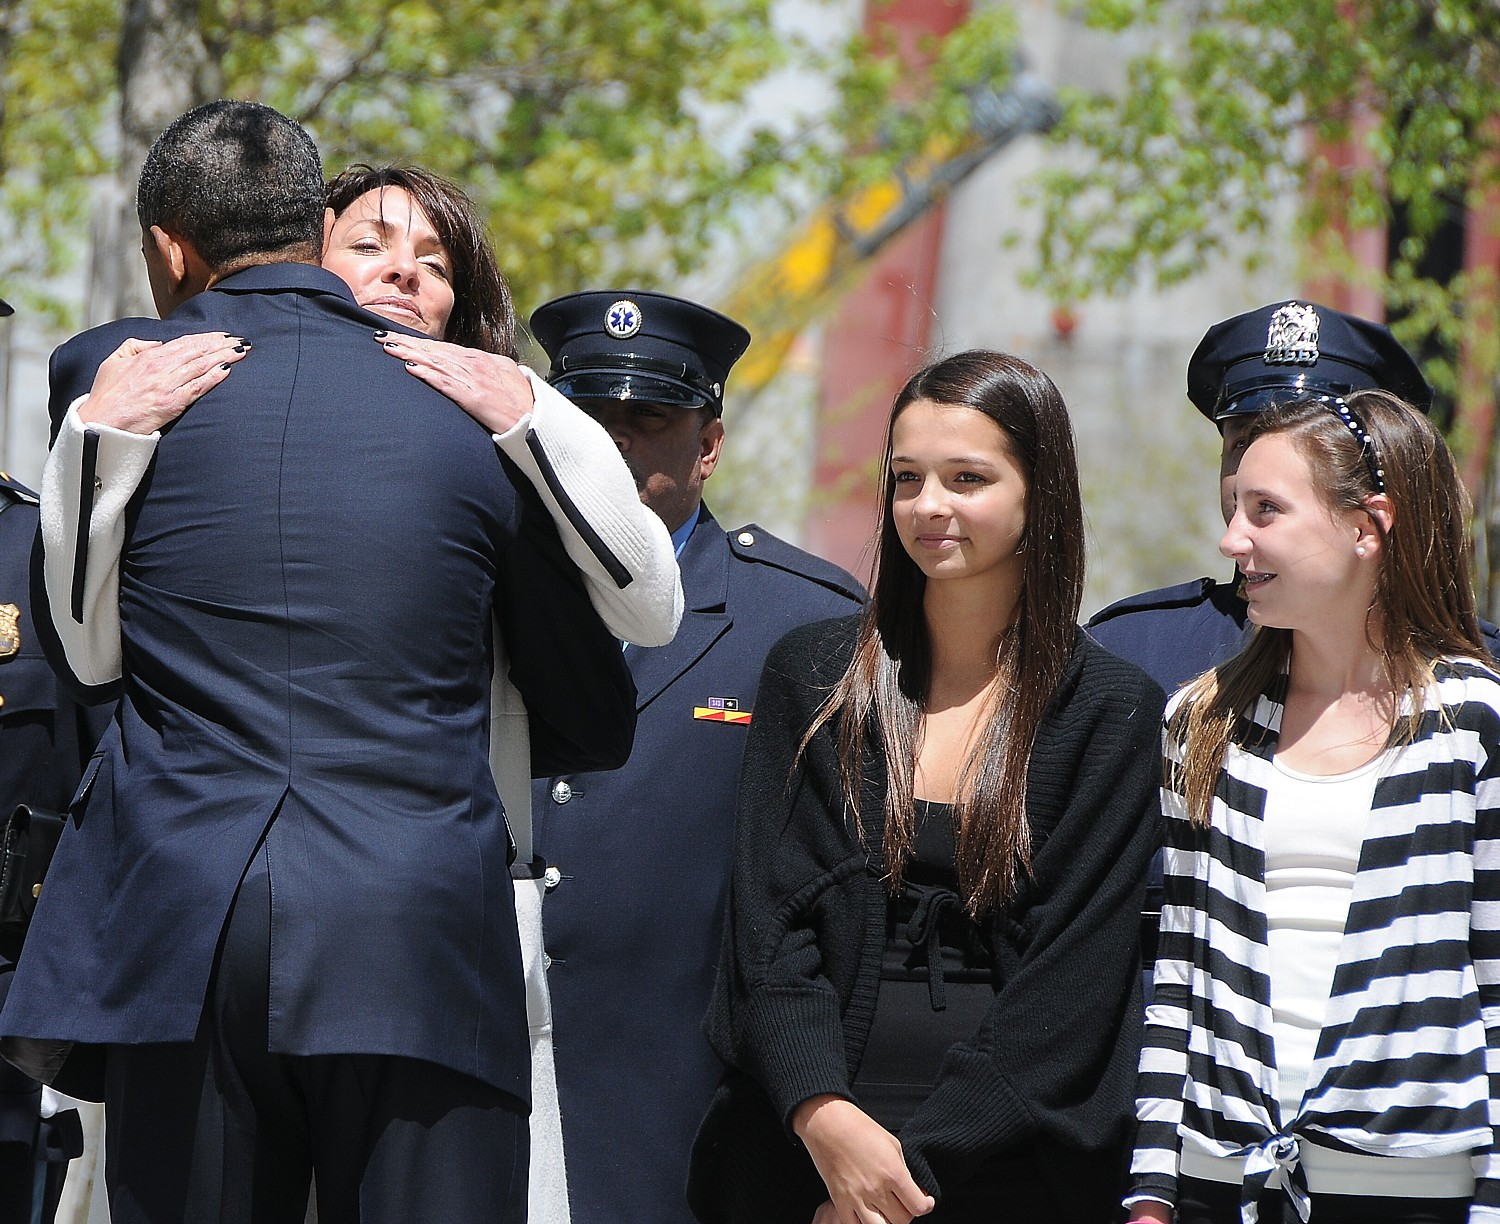 President Obama with Diane Wall and her family who lost family in the September 11 attacks, at dedication of September 11 Memorial. New York City, May 2011 © 2016 Karen Rubin/news-photos-features.com